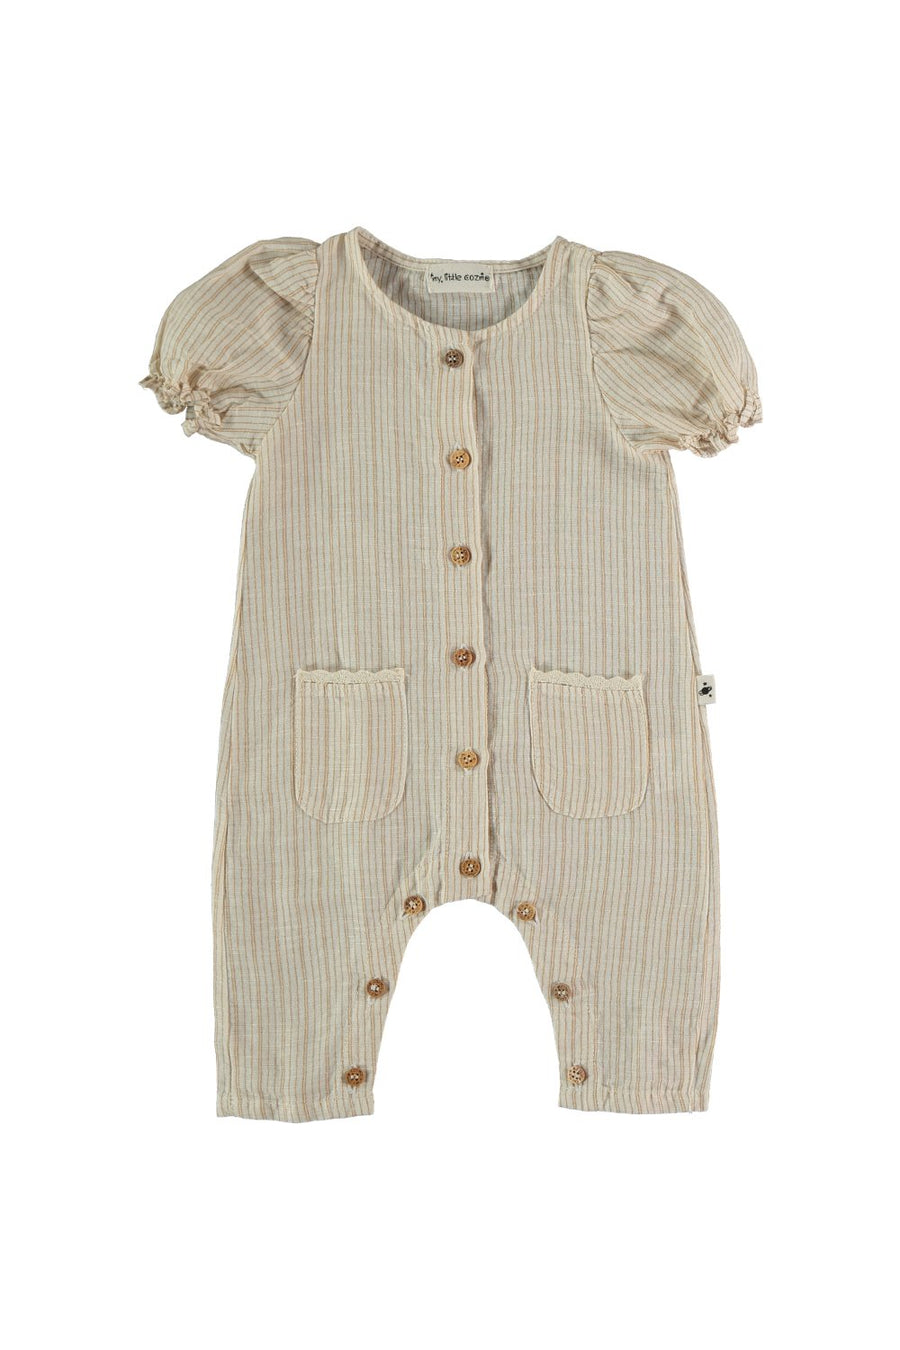 LINEN COTTON STRIPED BABY JUMPSUIT